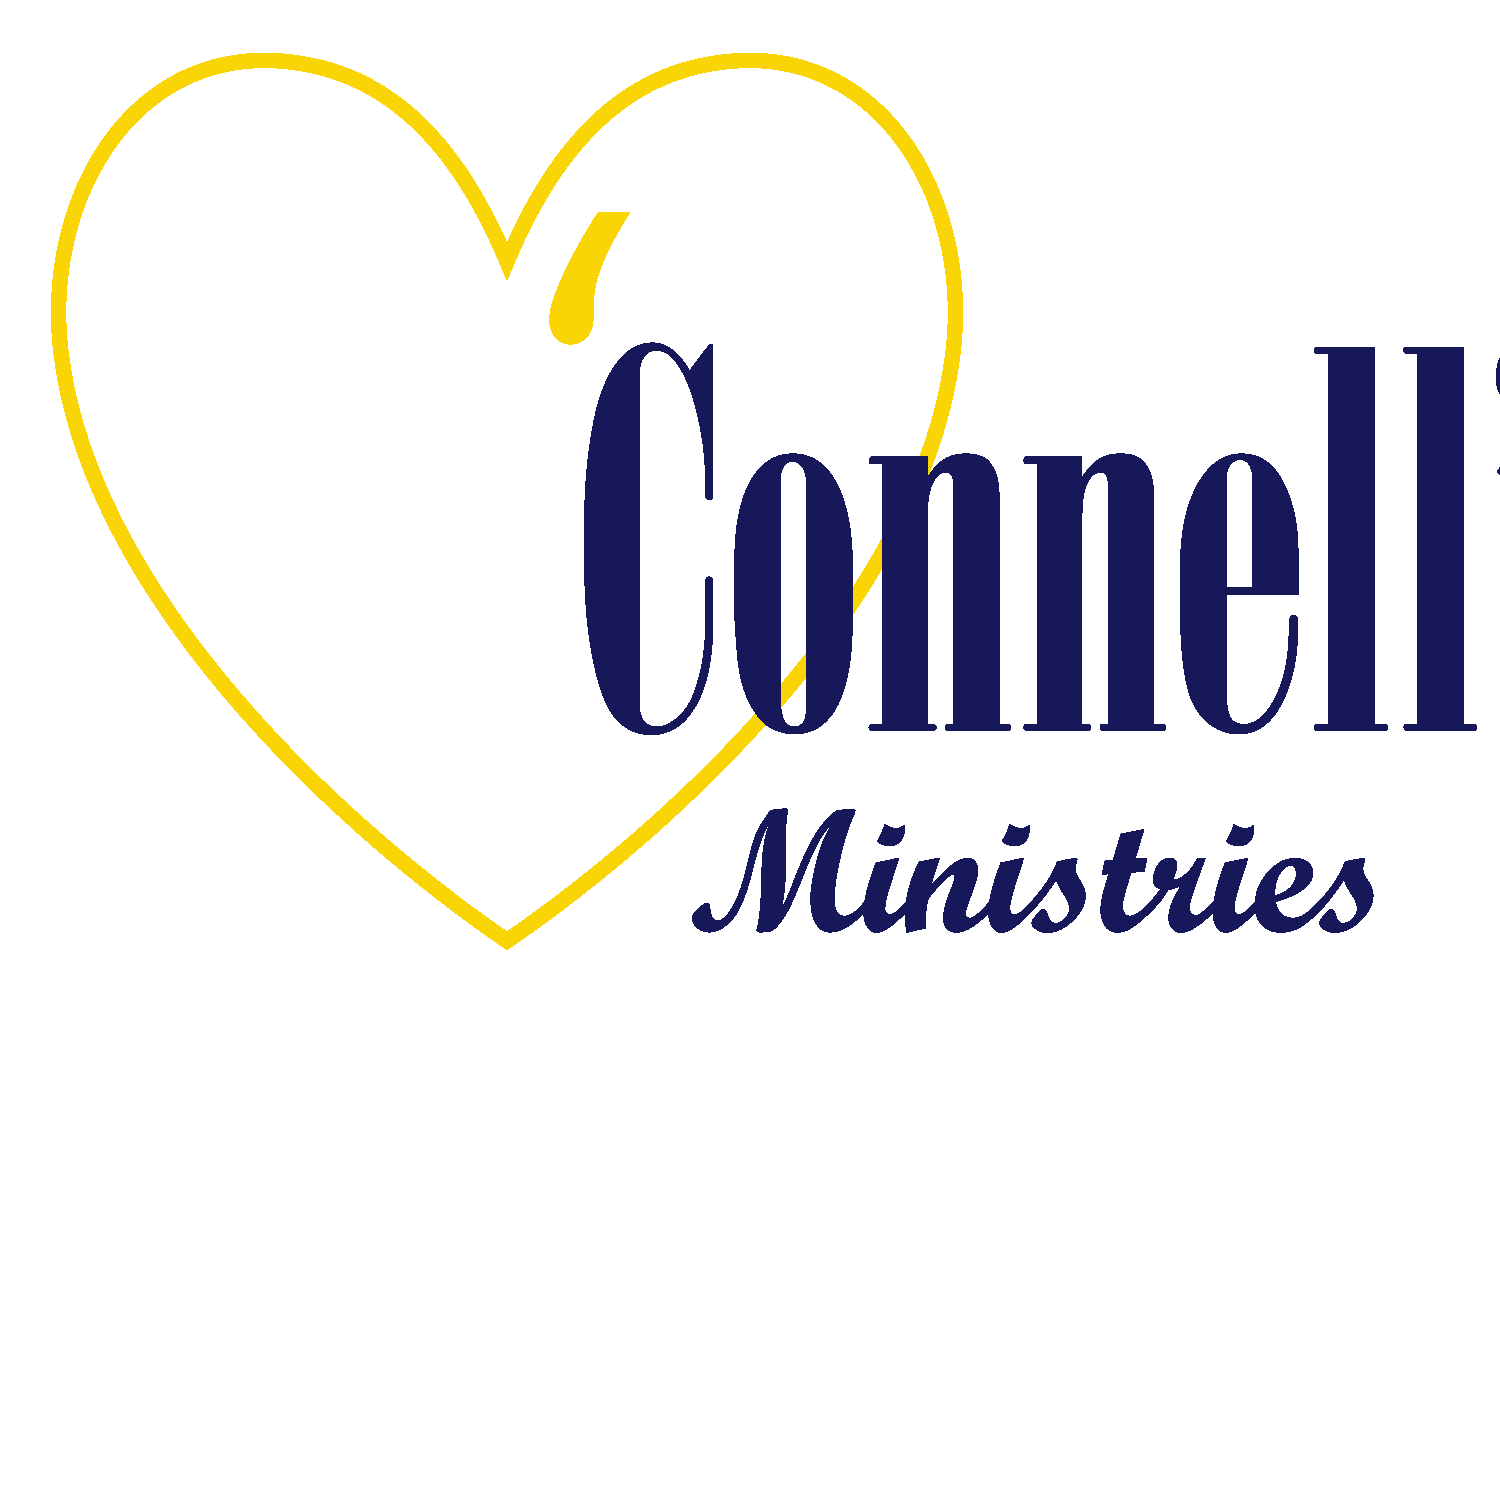 O'CONNELLS MINISTRIES primary image